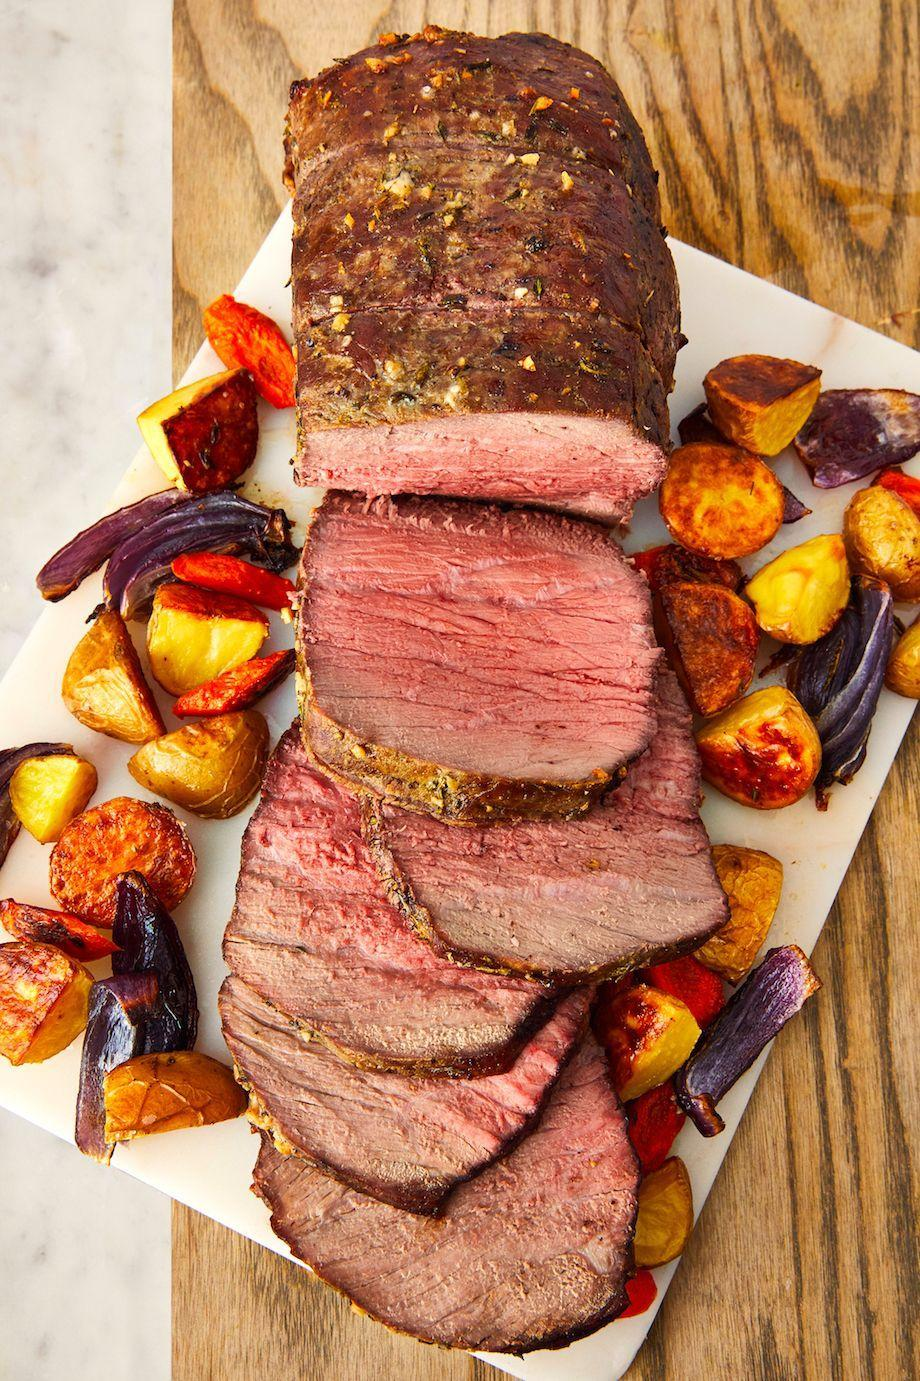 """<p>Here's everything you need to know about making <a href=""""https://www.delish.com/cooking/recipe-ideas/a23584914/perfect-roast-beef-recipe/"""" rel=""""nofollow noopener"""" target=""""_blank"""" data-ylk=""""slk:the perfect roast beef"""" class=""""link rapid-noclick-resp"""">the perfect roast beef</a>. </p><p>Get the recipe from <a href=""""https://www.delish.com/cooking/recipe-ideas/a23584914/perfect-roast-beef-recipe/"""" rel=""""nofollow noopener"""" target=""""_blank"""" data-ylk=""""slk:Delish"""" class=""""link rapid-noclick-resp"""">Delish</a>.</p>"""